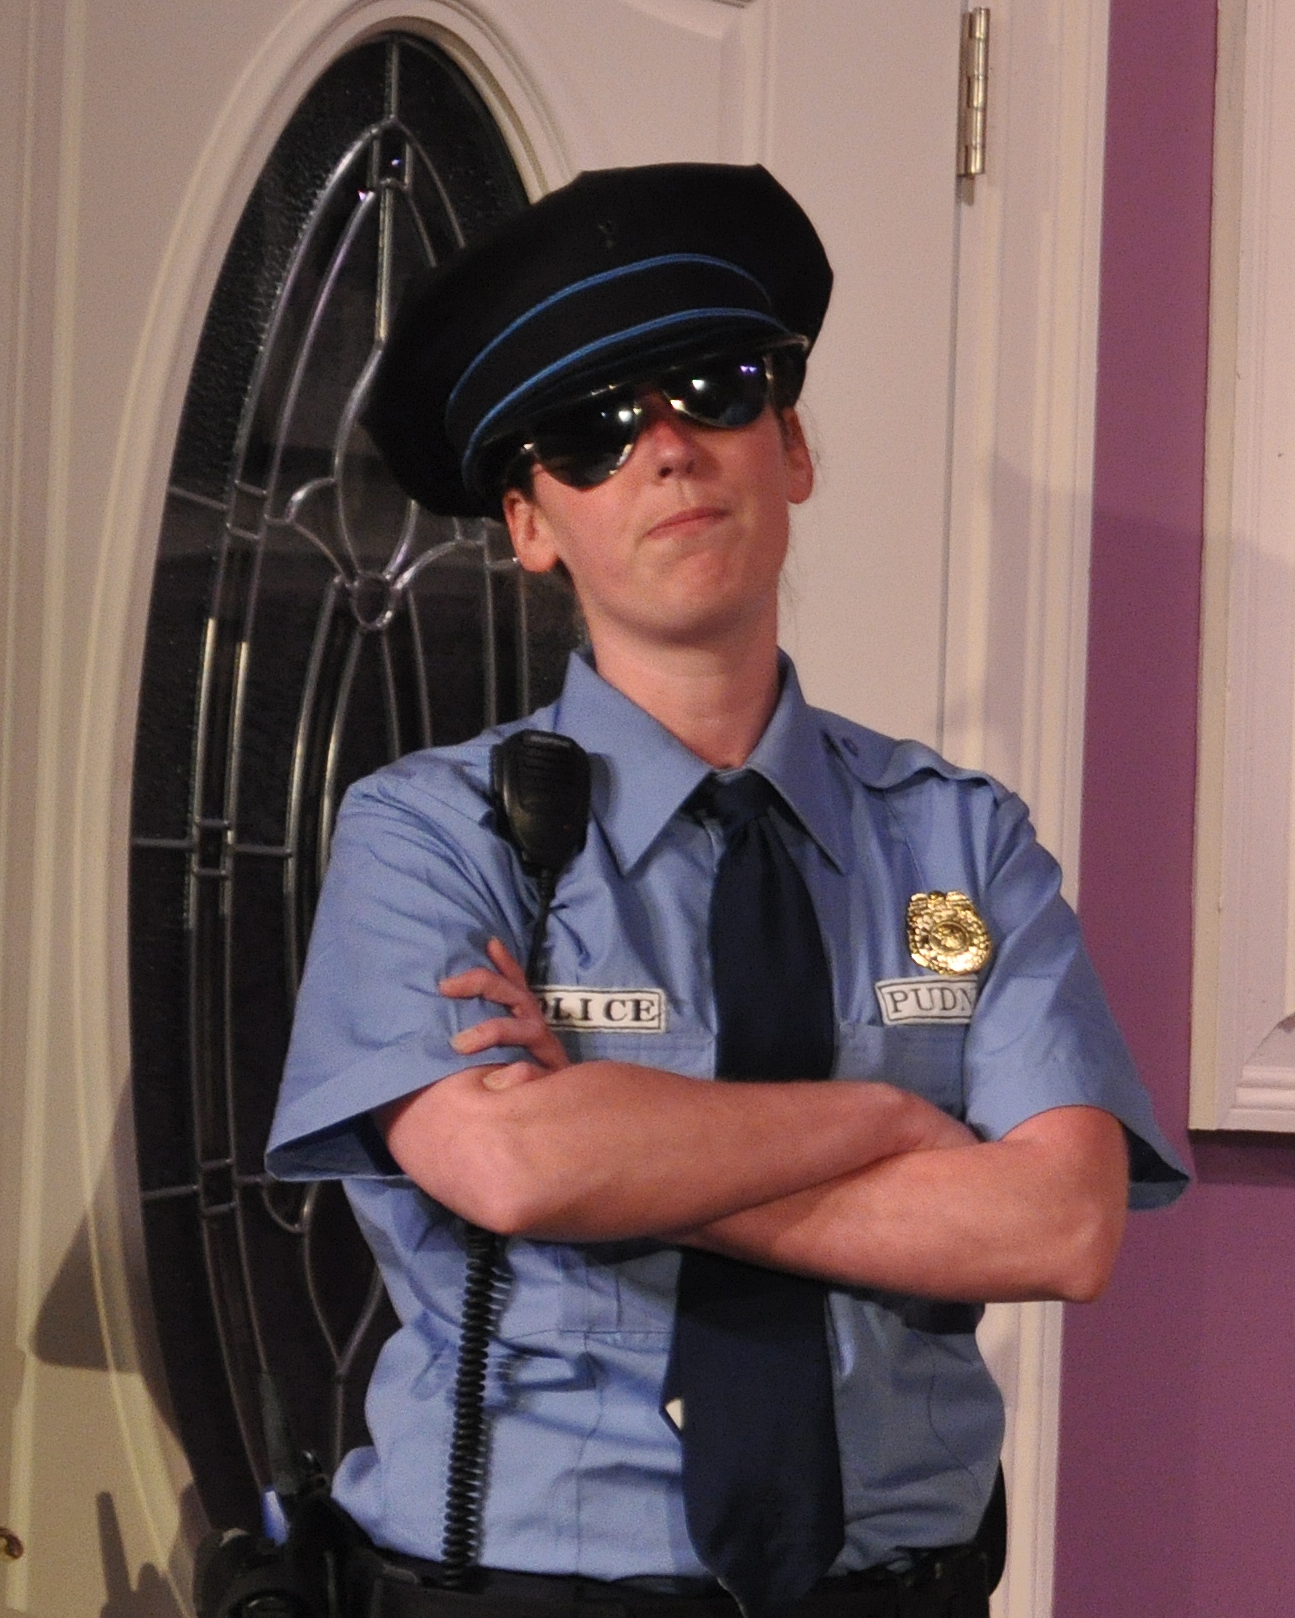 Lauren Sullivan as Officer Pudney - 2014 Best Featured Actress in a Play - DCMTA Photo by Chip Gertzog Providence Players